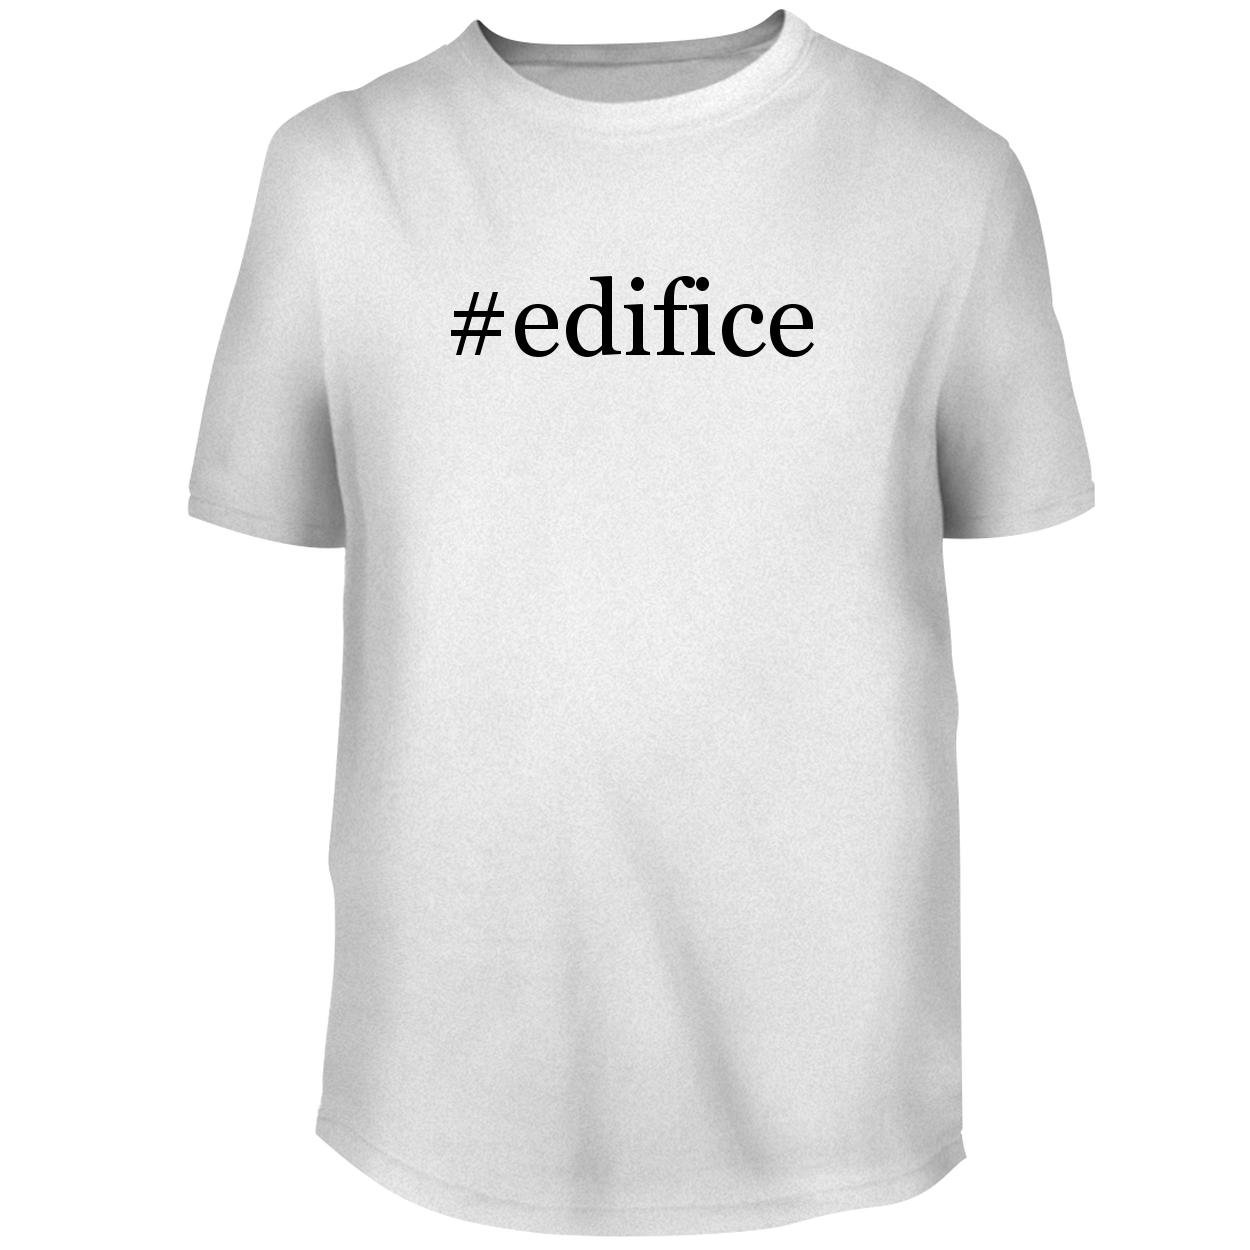 BH Cool Designs #Edifice - Men's Graphic Tee, White, X-Large